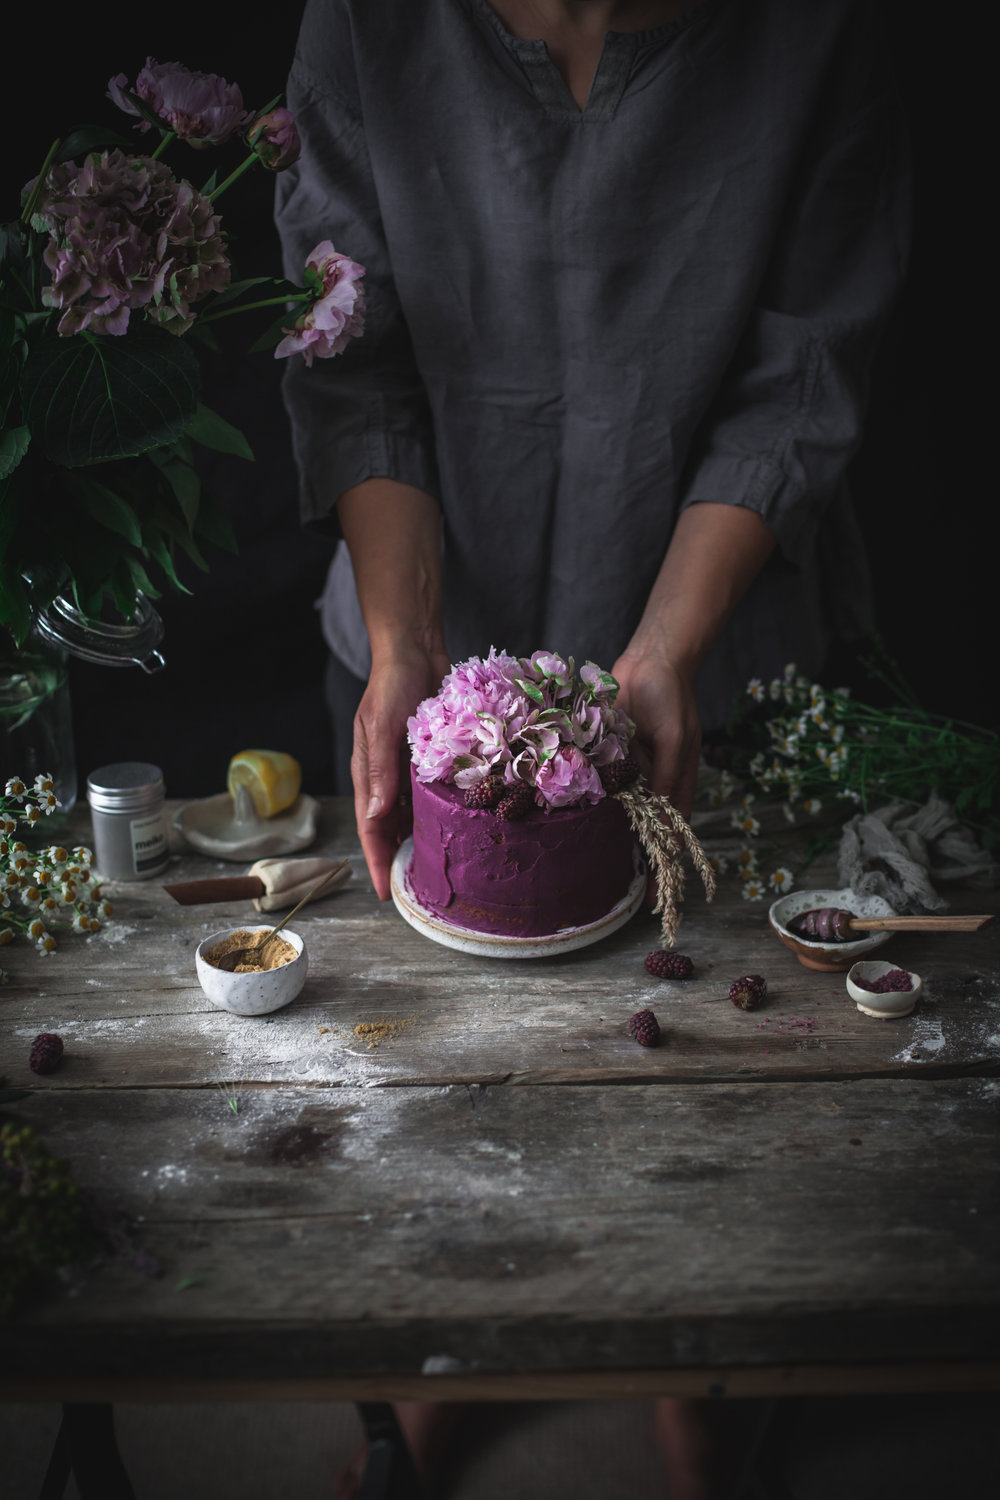 purple potates and white chocolate vegan cake